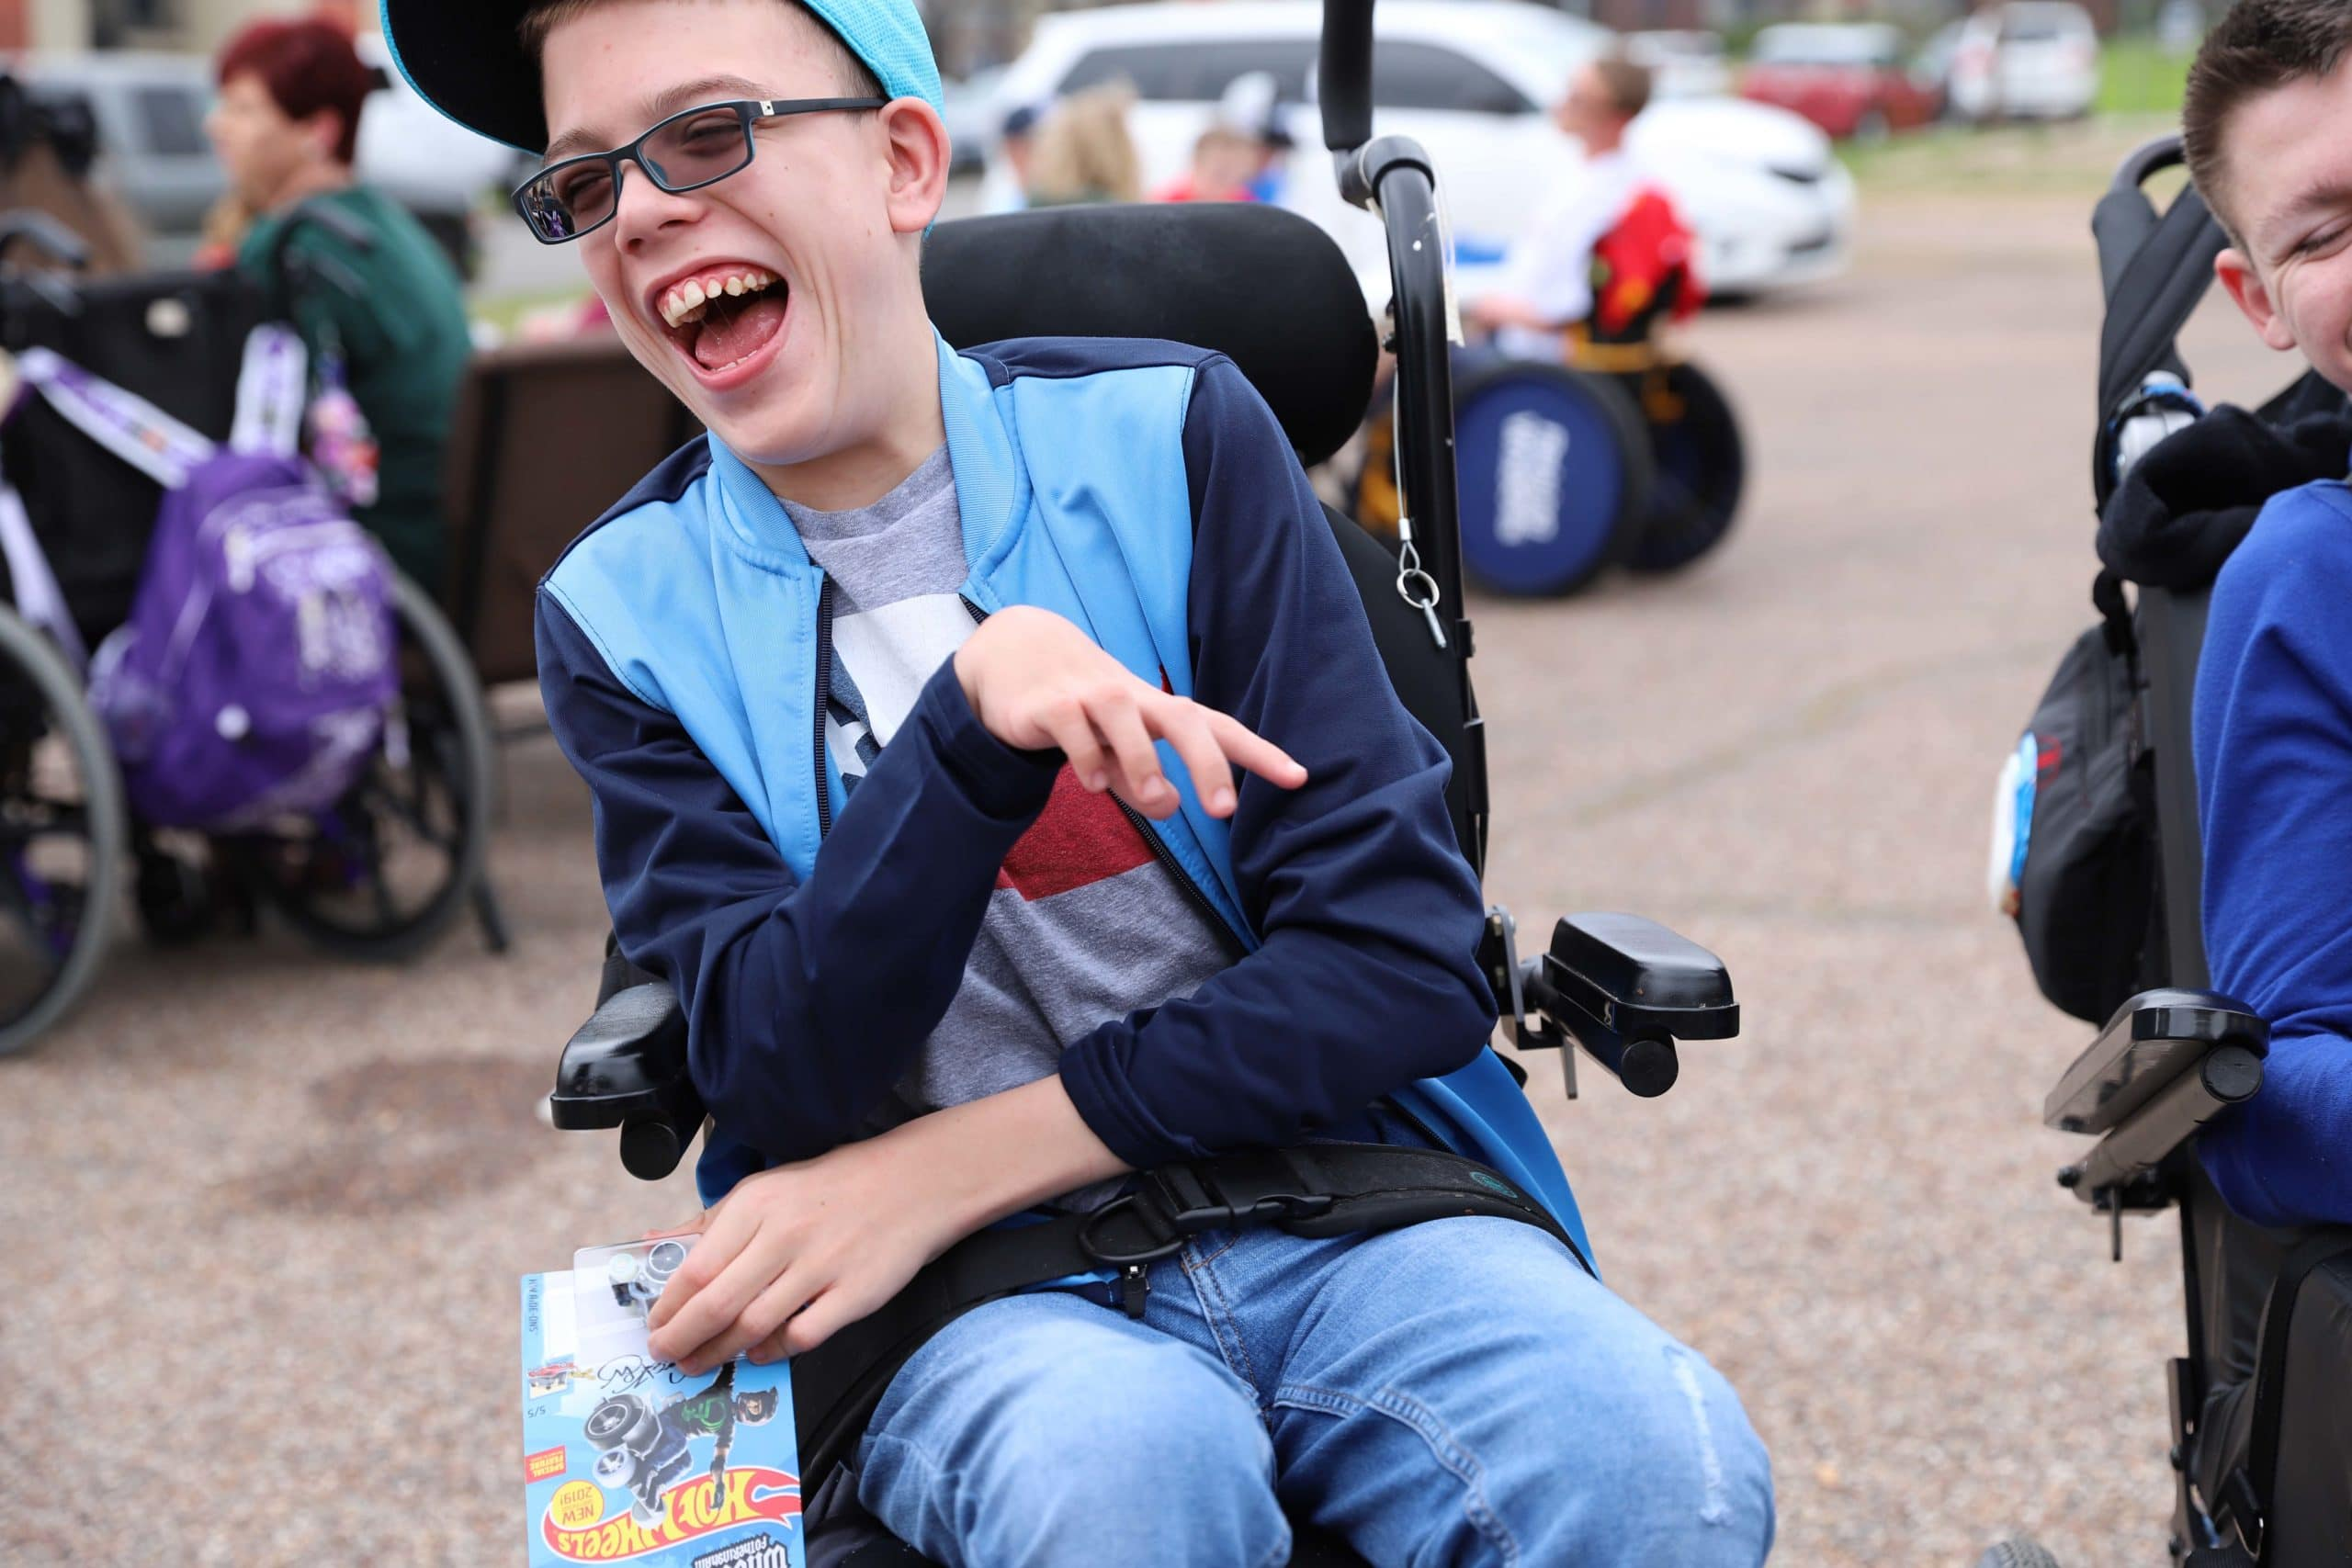 A boy in a power wheelchair wearing a baseball cap and sunglasses smiles large while looking off to his side.